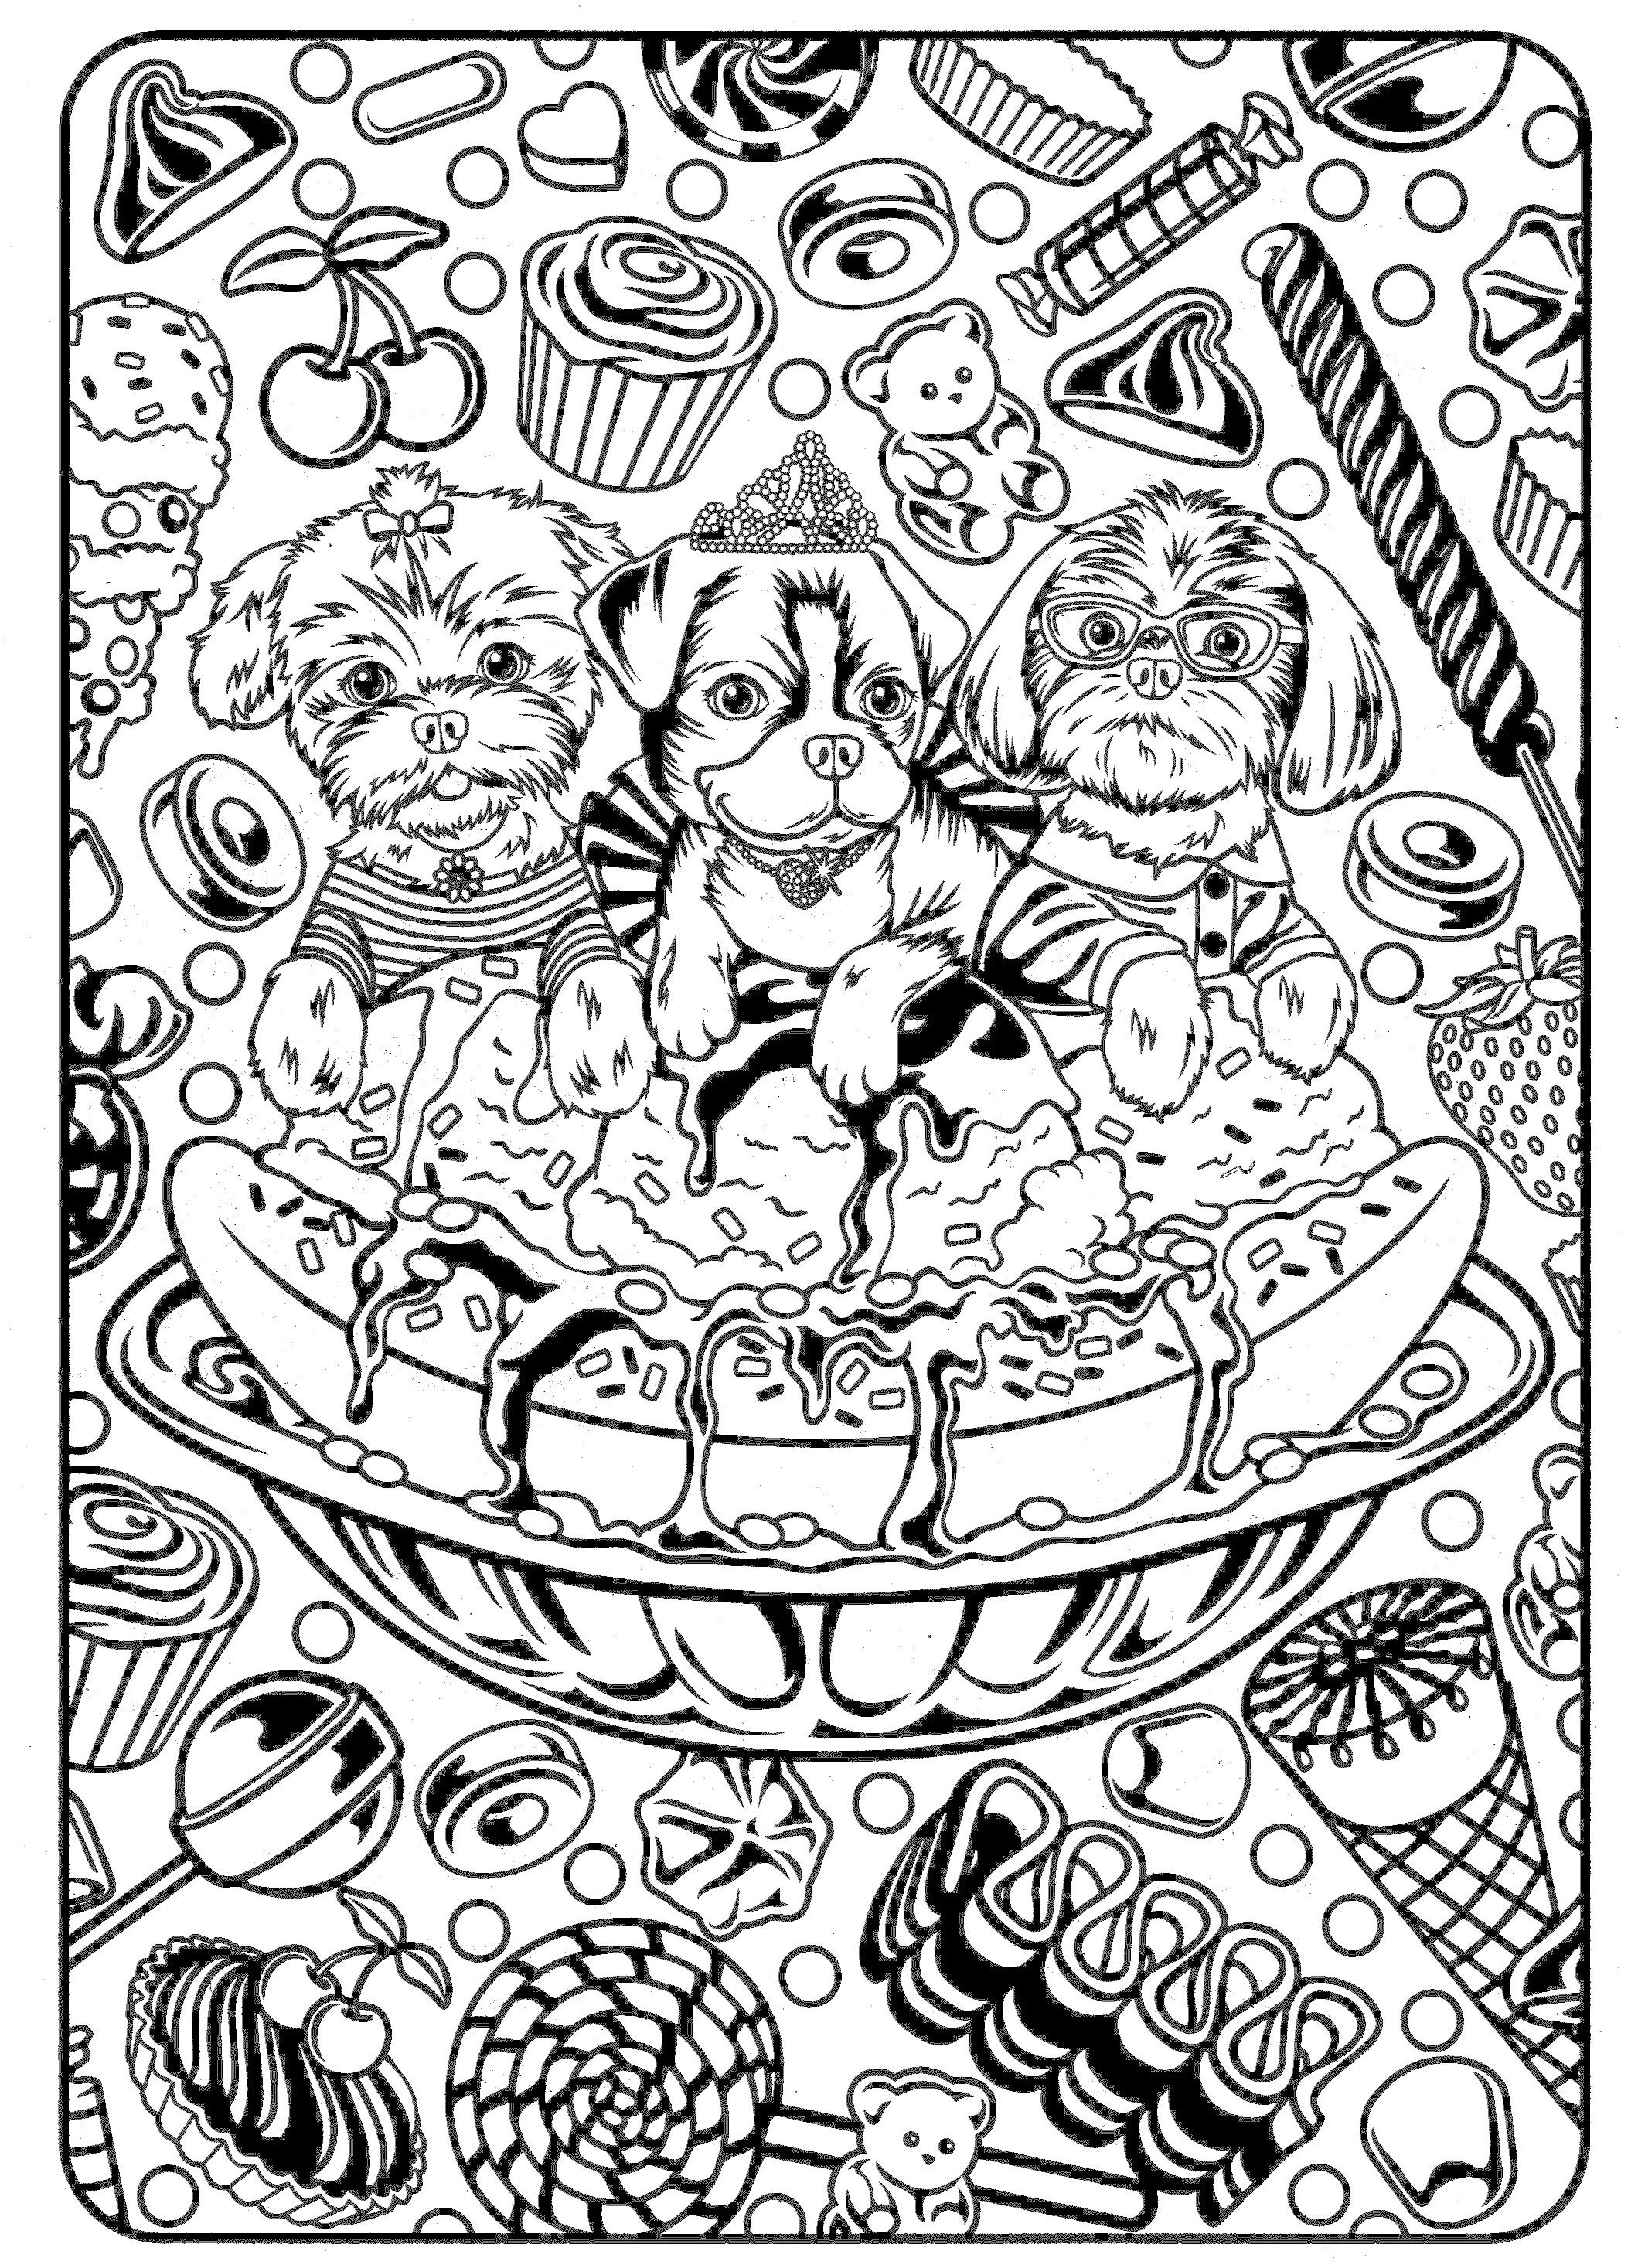 coloring art 8 best printable coloring pages doodle art printableecom art coloring